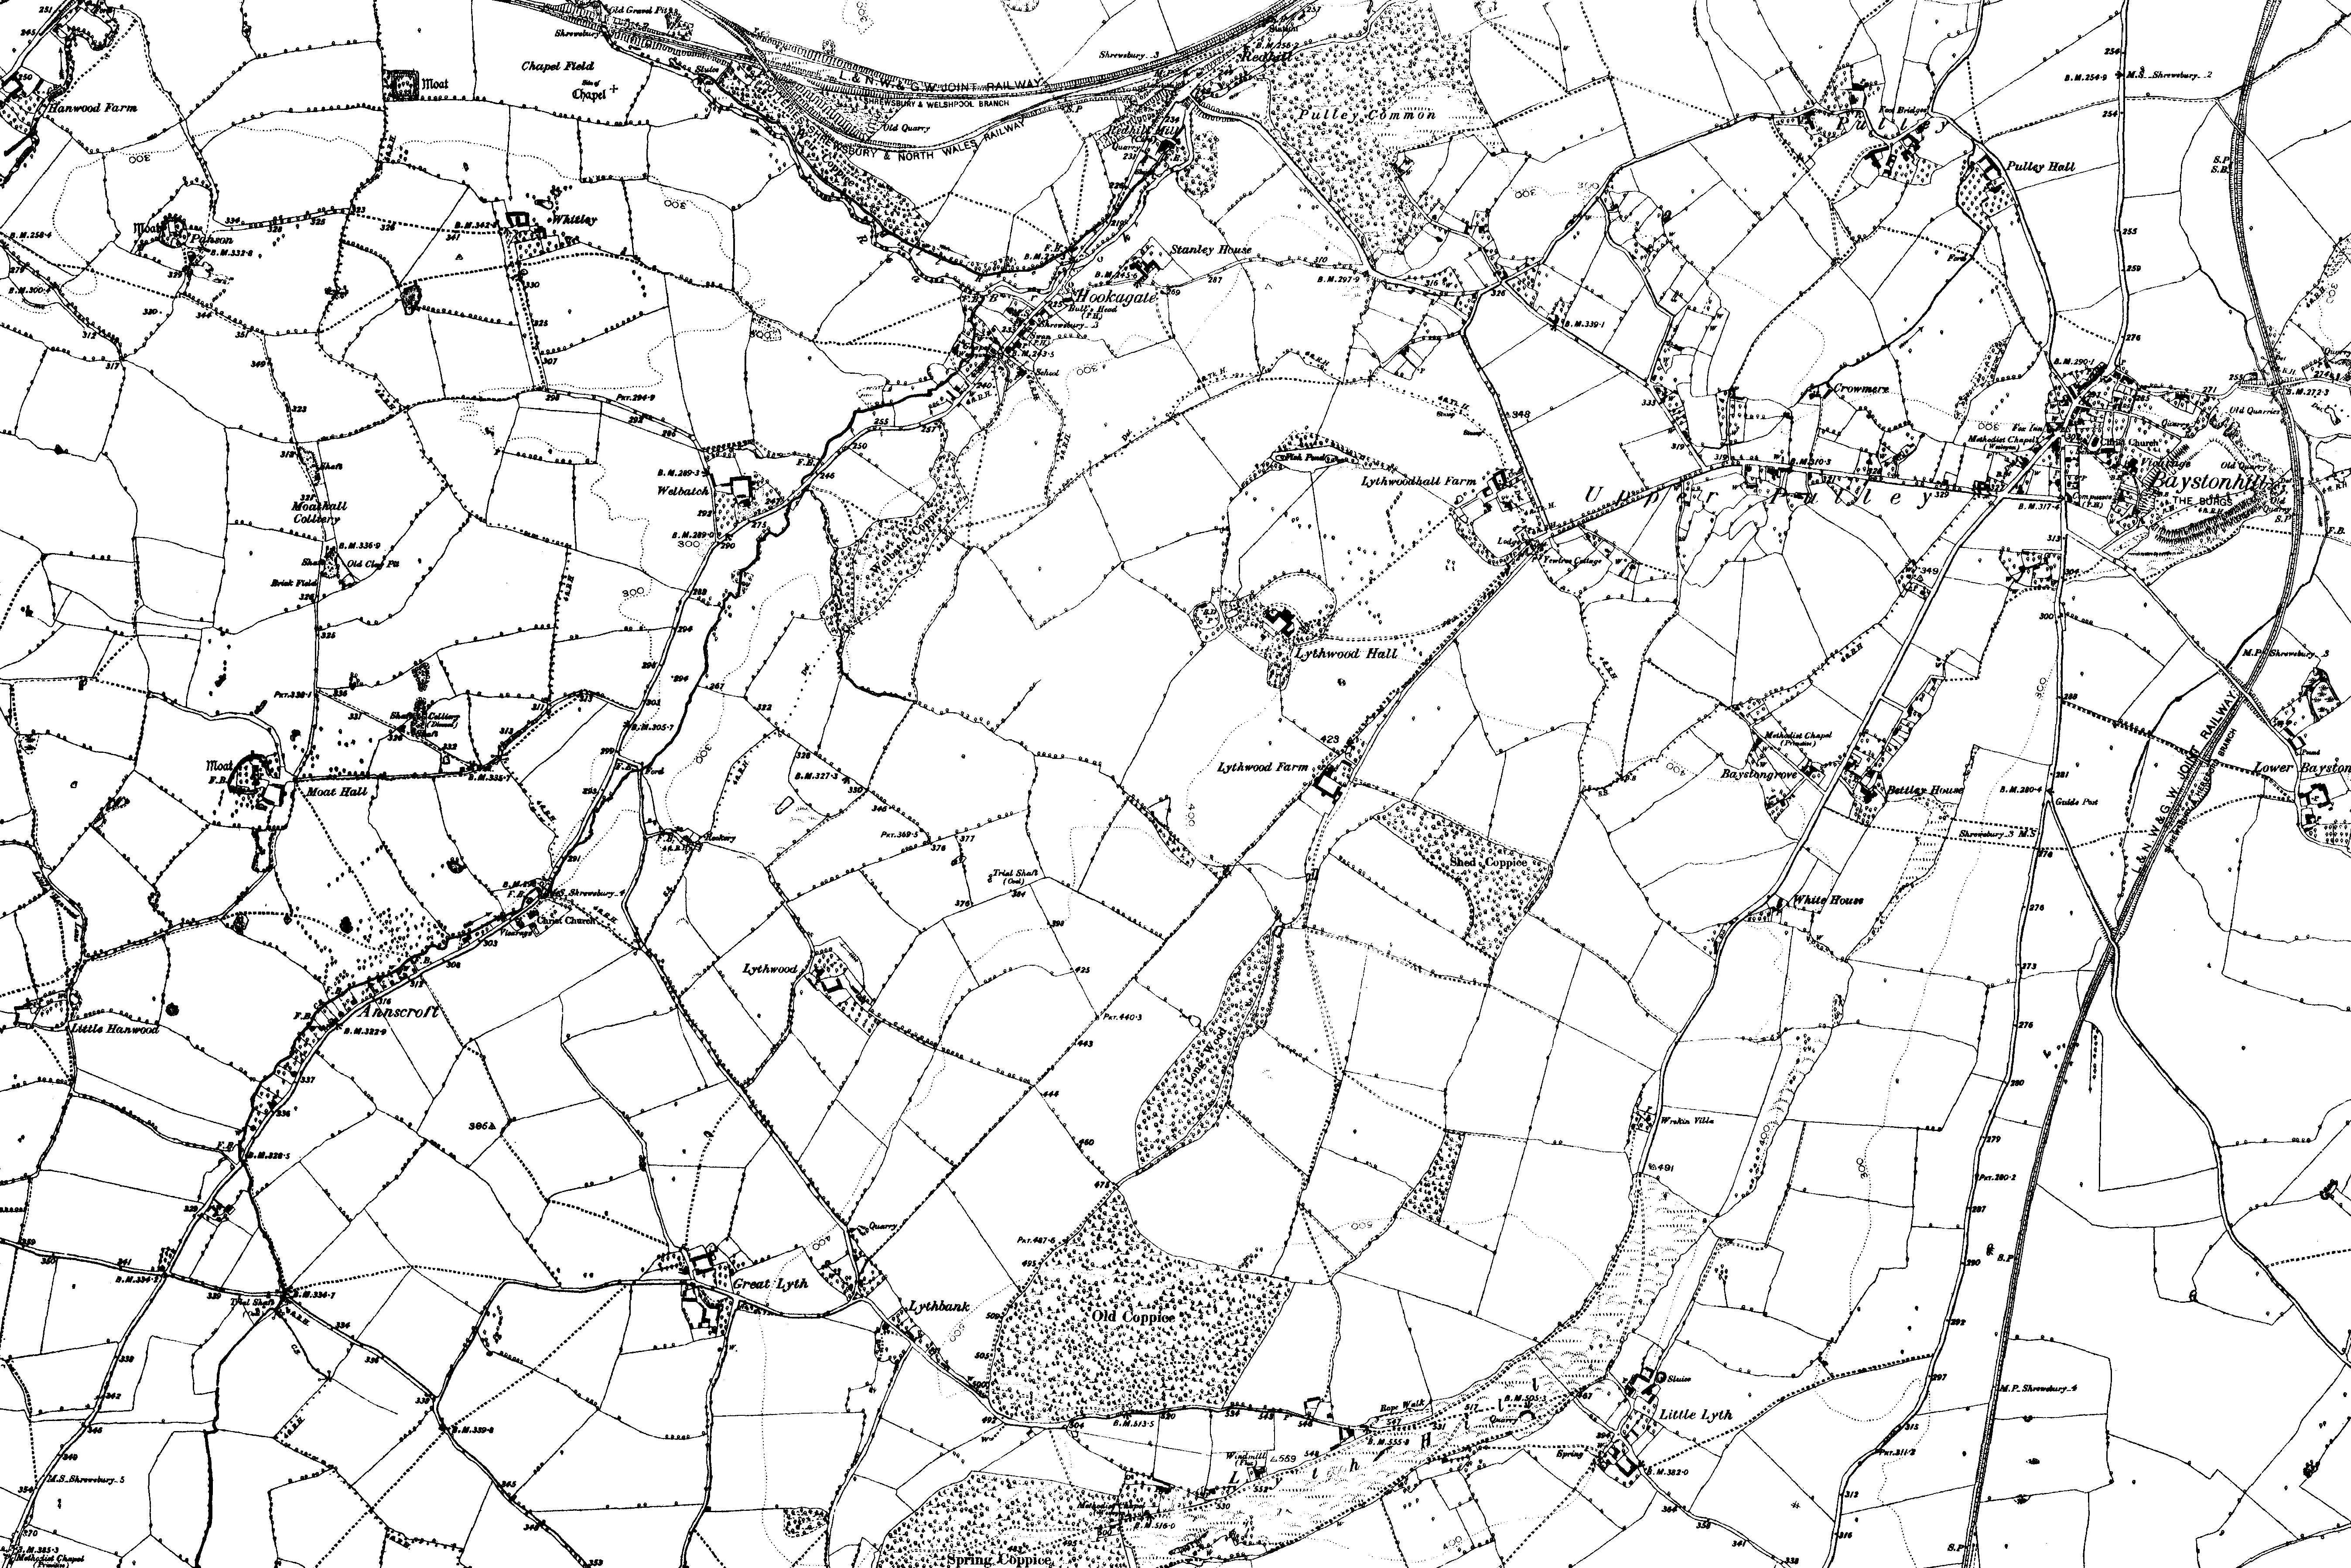 OS Map name 041/NW Annscroft, Bayston Hill, Great Lyth, Hook-a-Gate, Little Lyth, Lythbank, Pulley, SY5 8, SY3 0. Date: between 1883 and 1895.